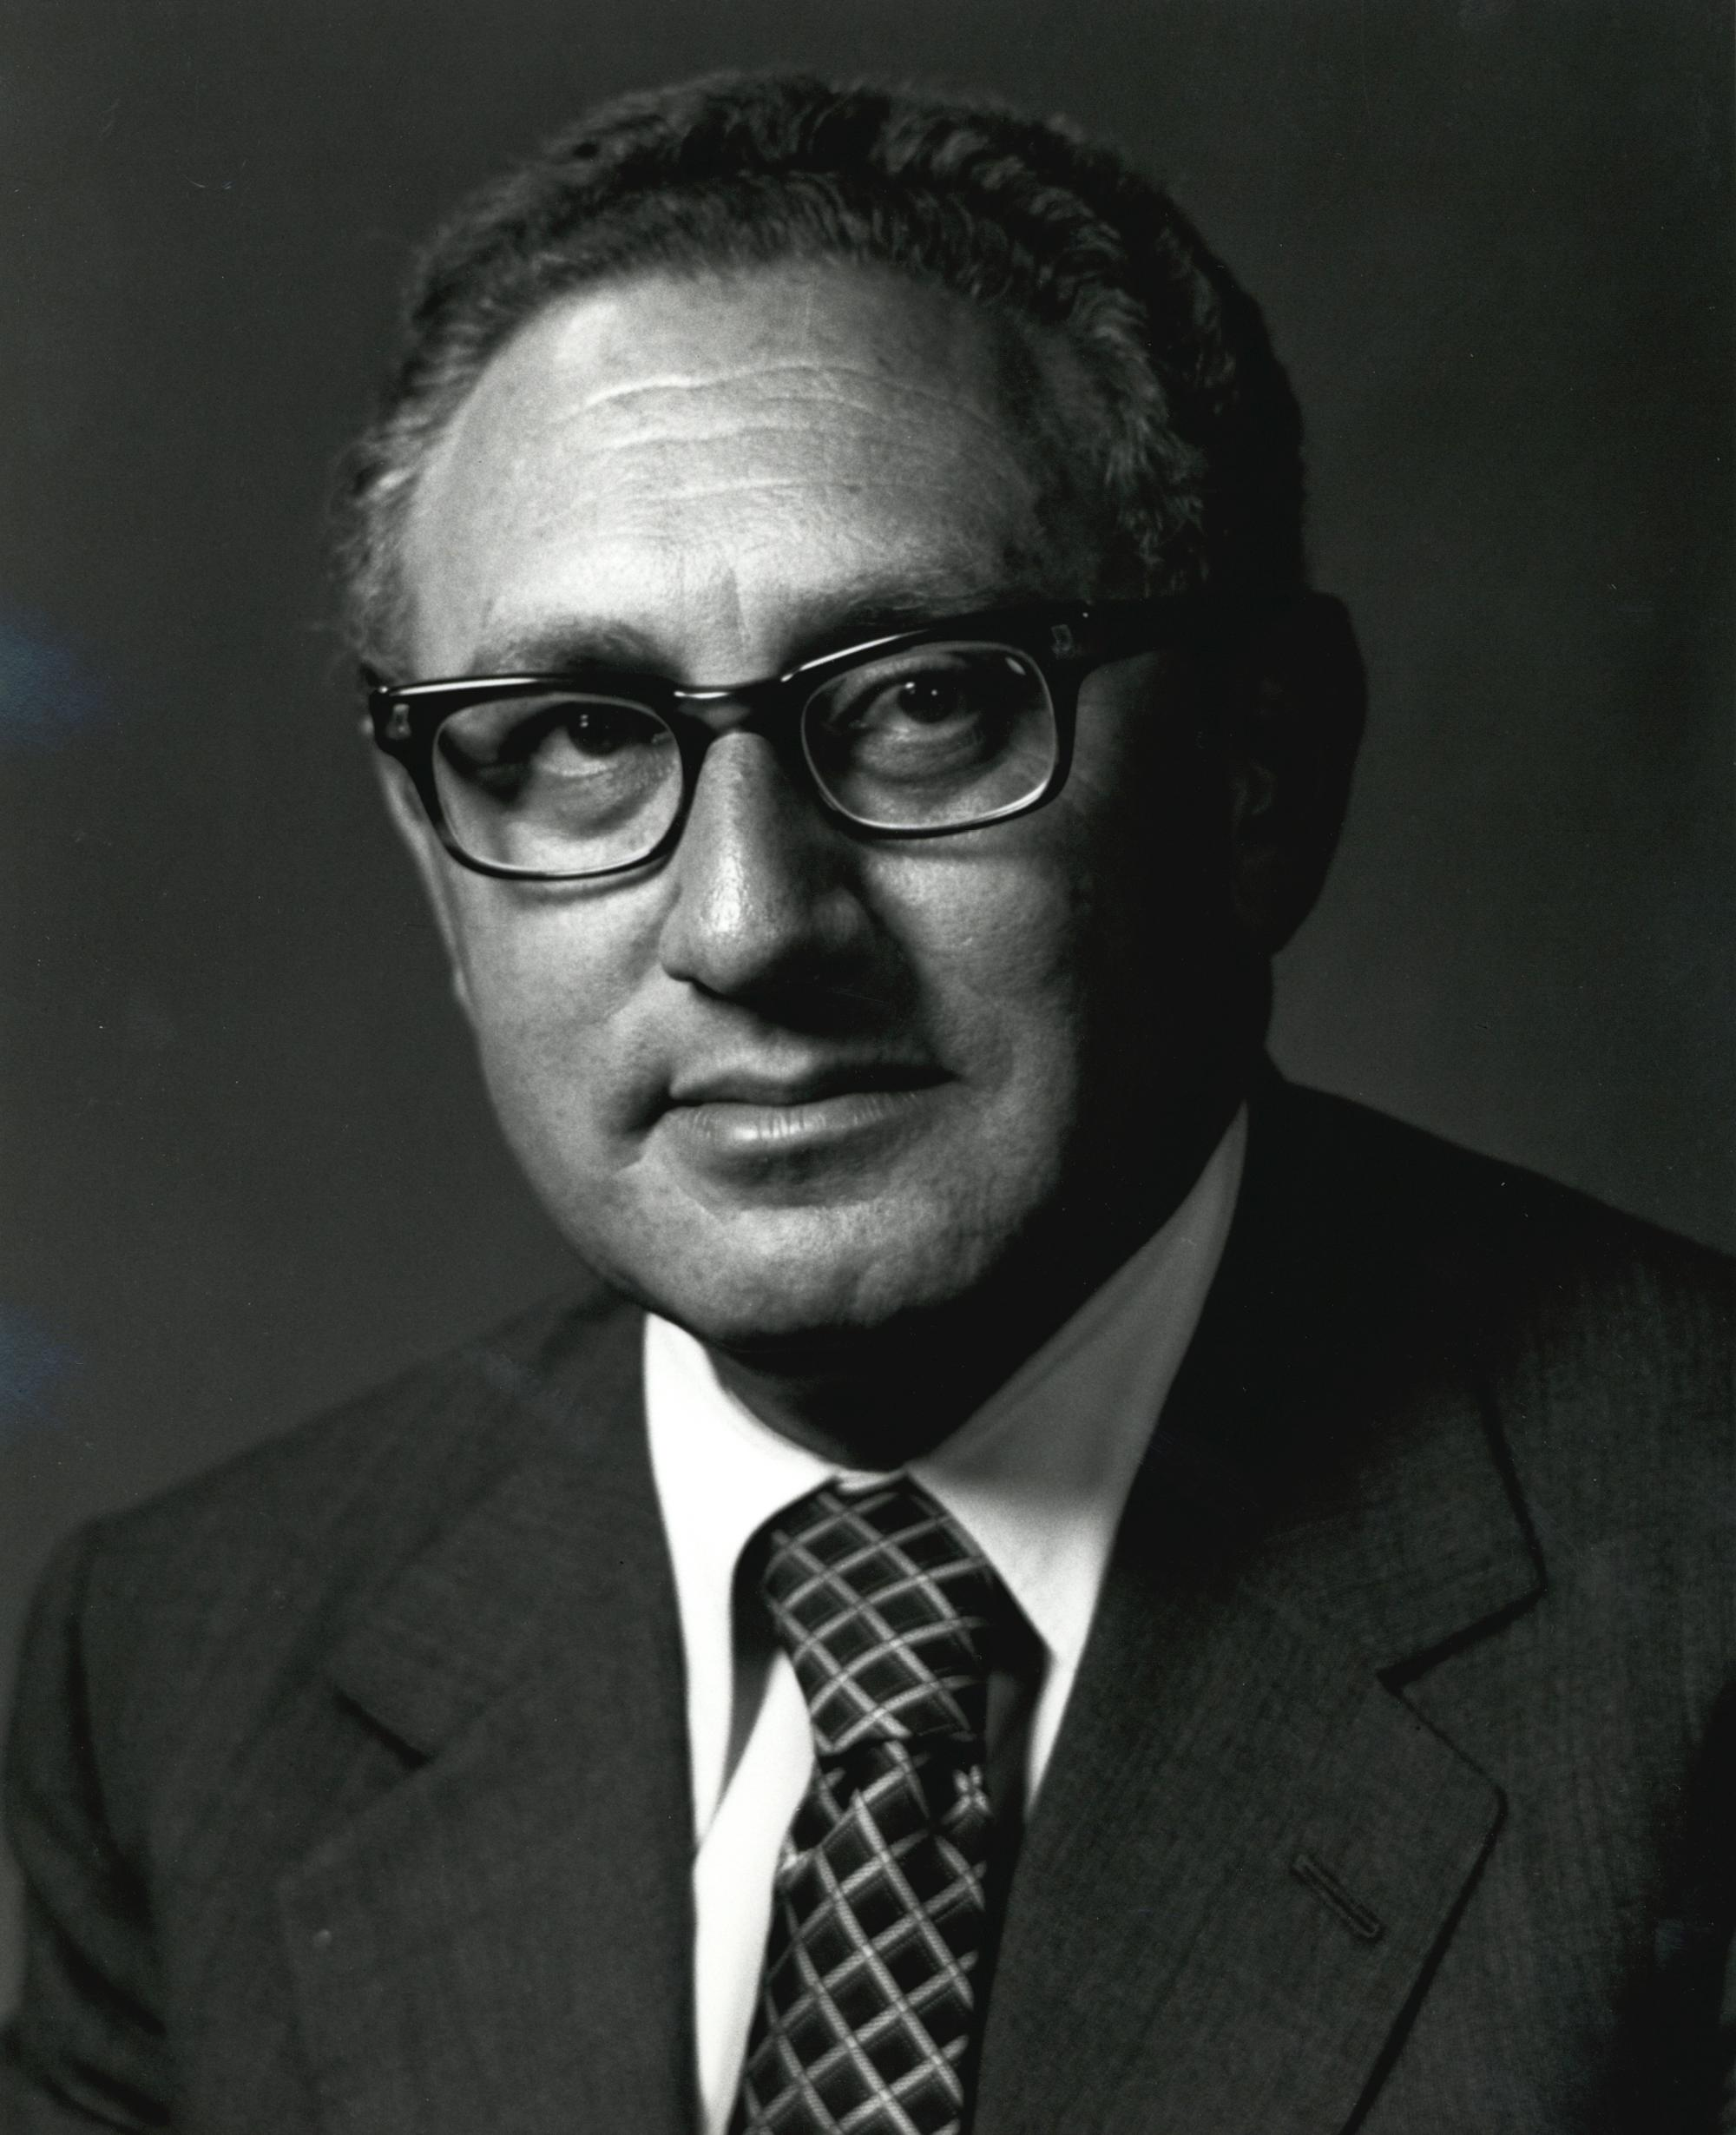 HENRY KISSINGER - Simple English Wikipedia, the free encyclopedia